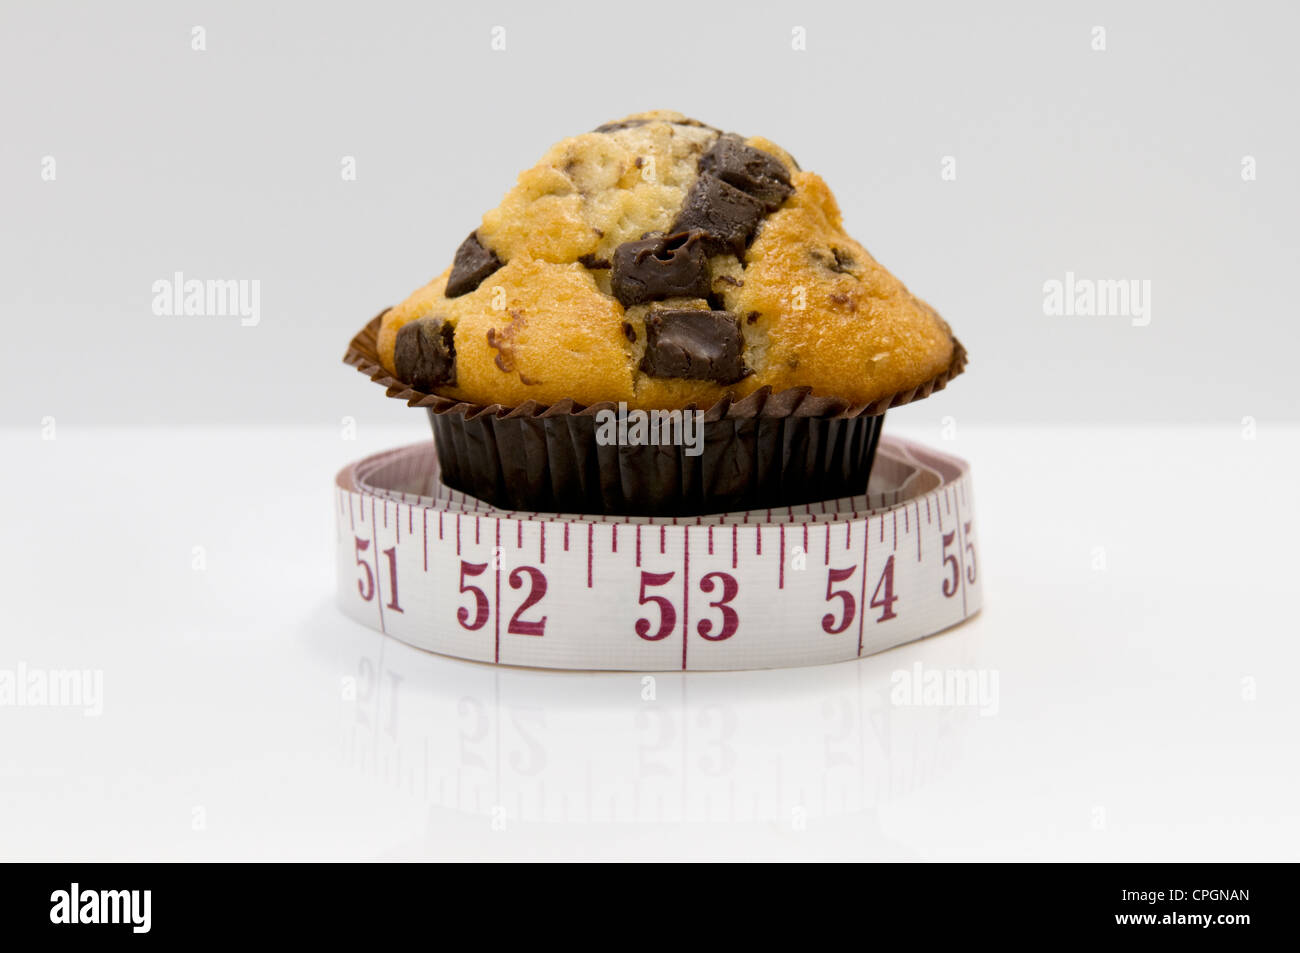 Chocolate chip muffin with tape measure depicting concept that eating cakes will pile on the inches - Stock Image